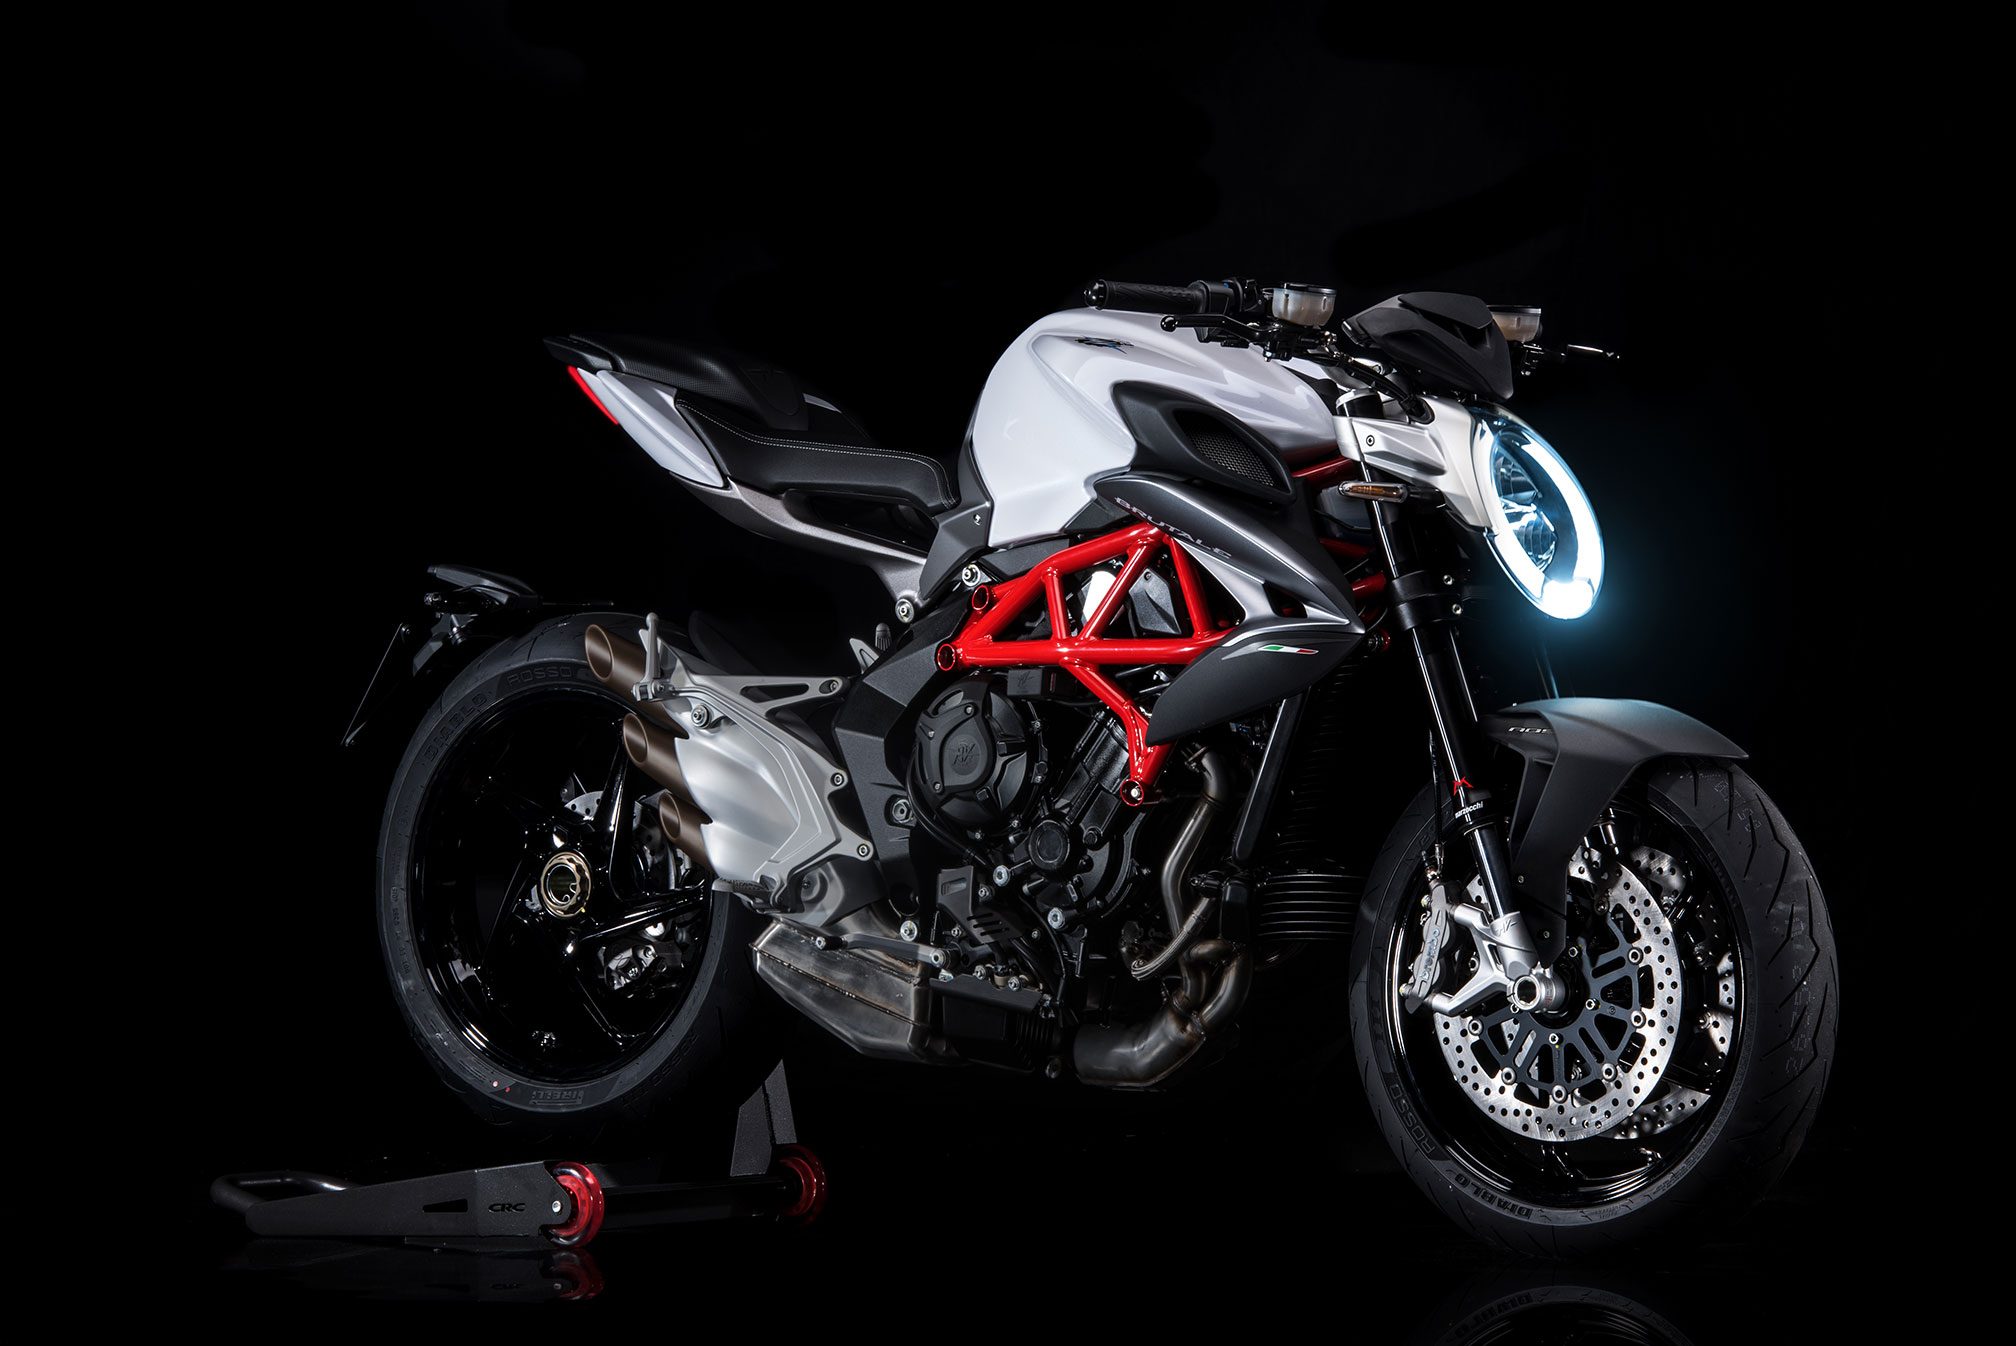 2016 MV Agusta Brutale 800 Review